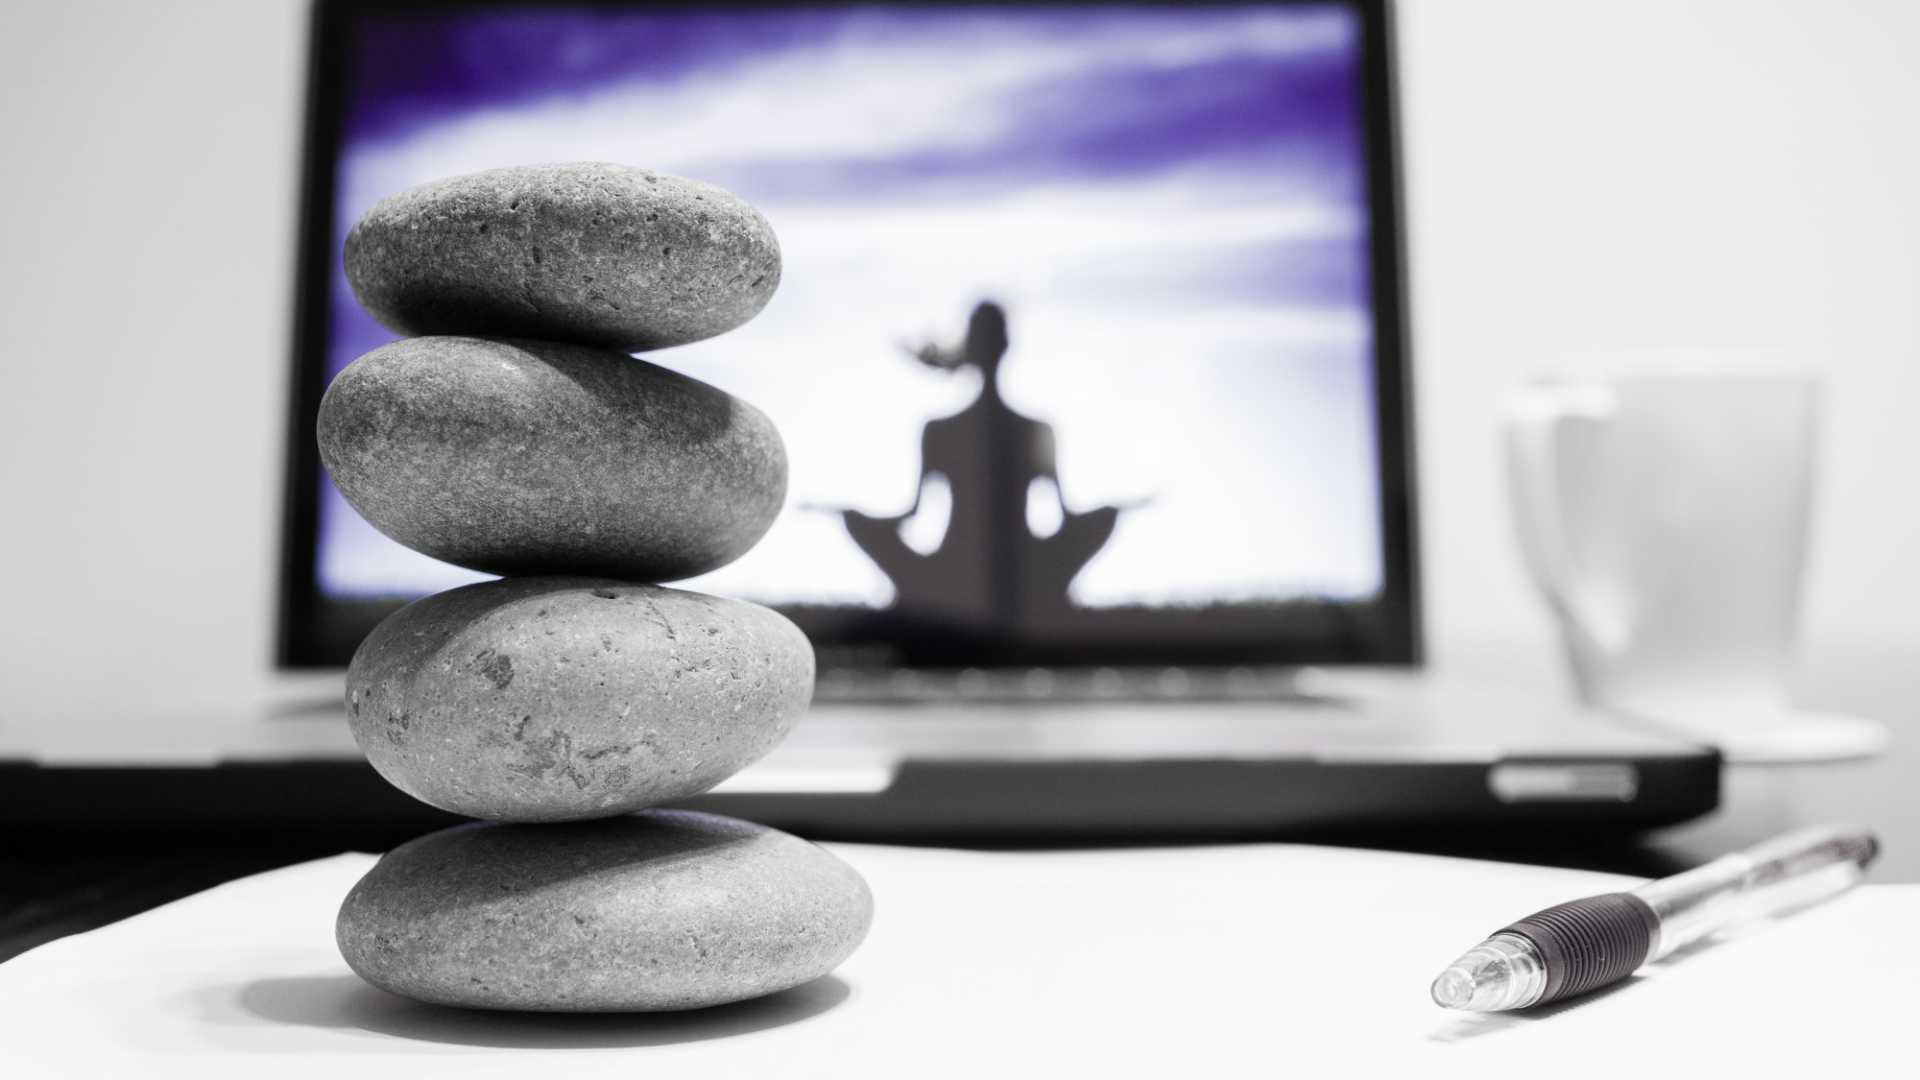 Shifting Your Office Into a More Zen Space